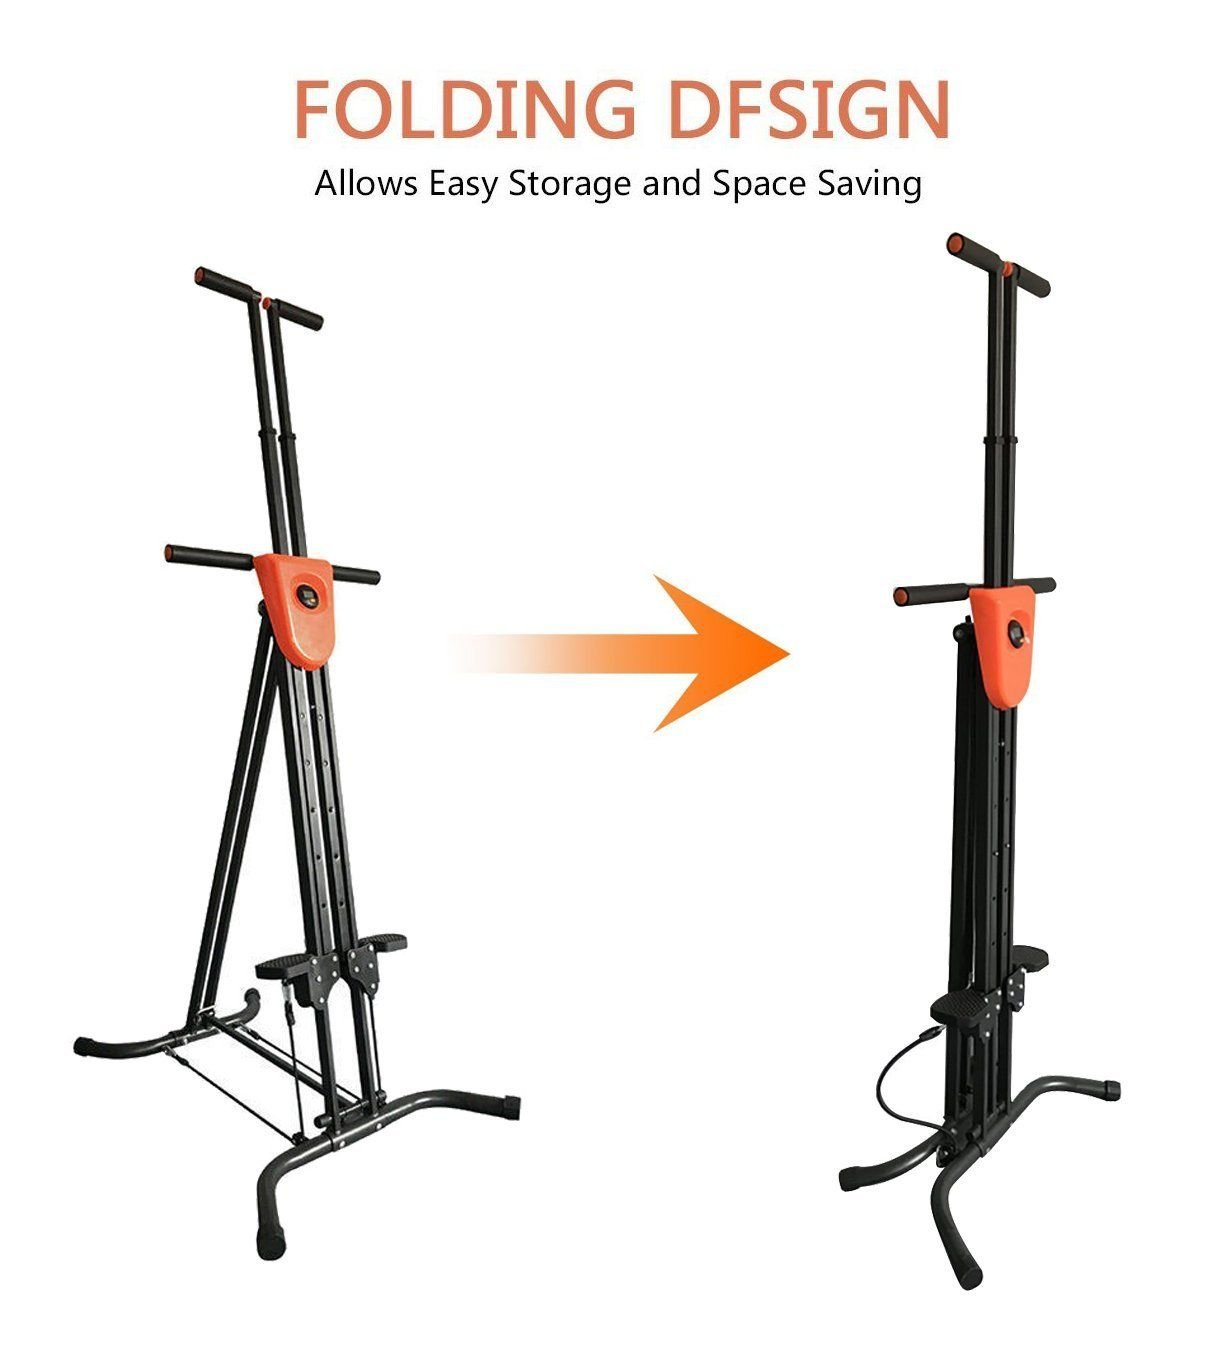 Coldcedar Foldable Vertical Climber Cardio Exercise with monitor and resistance straps for smooth climbing Full Body Workout As Seen On TV (Black, 286lbs) by Coldcedar (Image #6)